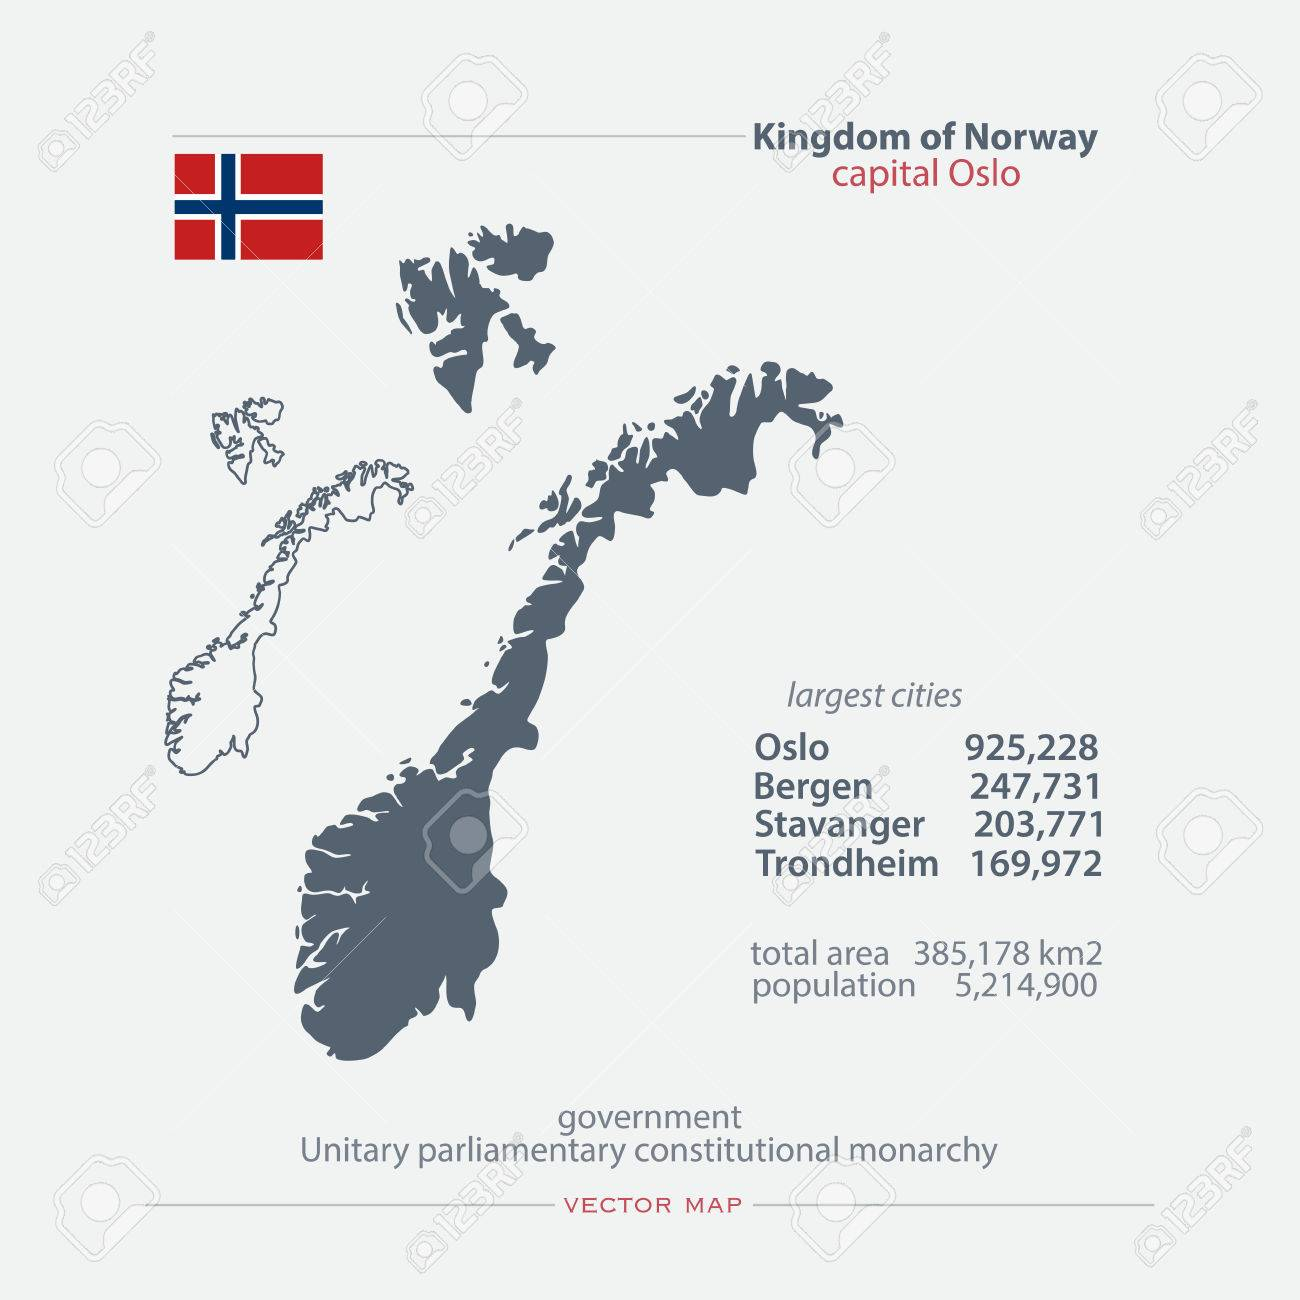 Kingdom of Norway isolated maps and official flag icon. vector.. on republic of panama map, republic of maldives map, russian federation map, united arab emirates map, republic of moldova map, republic of turkey map, republic of san marino map, republic of india map, bailiwick of jersey map, republic of cyprus map, state of israel map, republic of colombia map, republic of south africa map, people's republic of china map, united states of america map, united republic of tanzania map, republic of belarus map, republic of nauru map, japan map, republic of palau map,